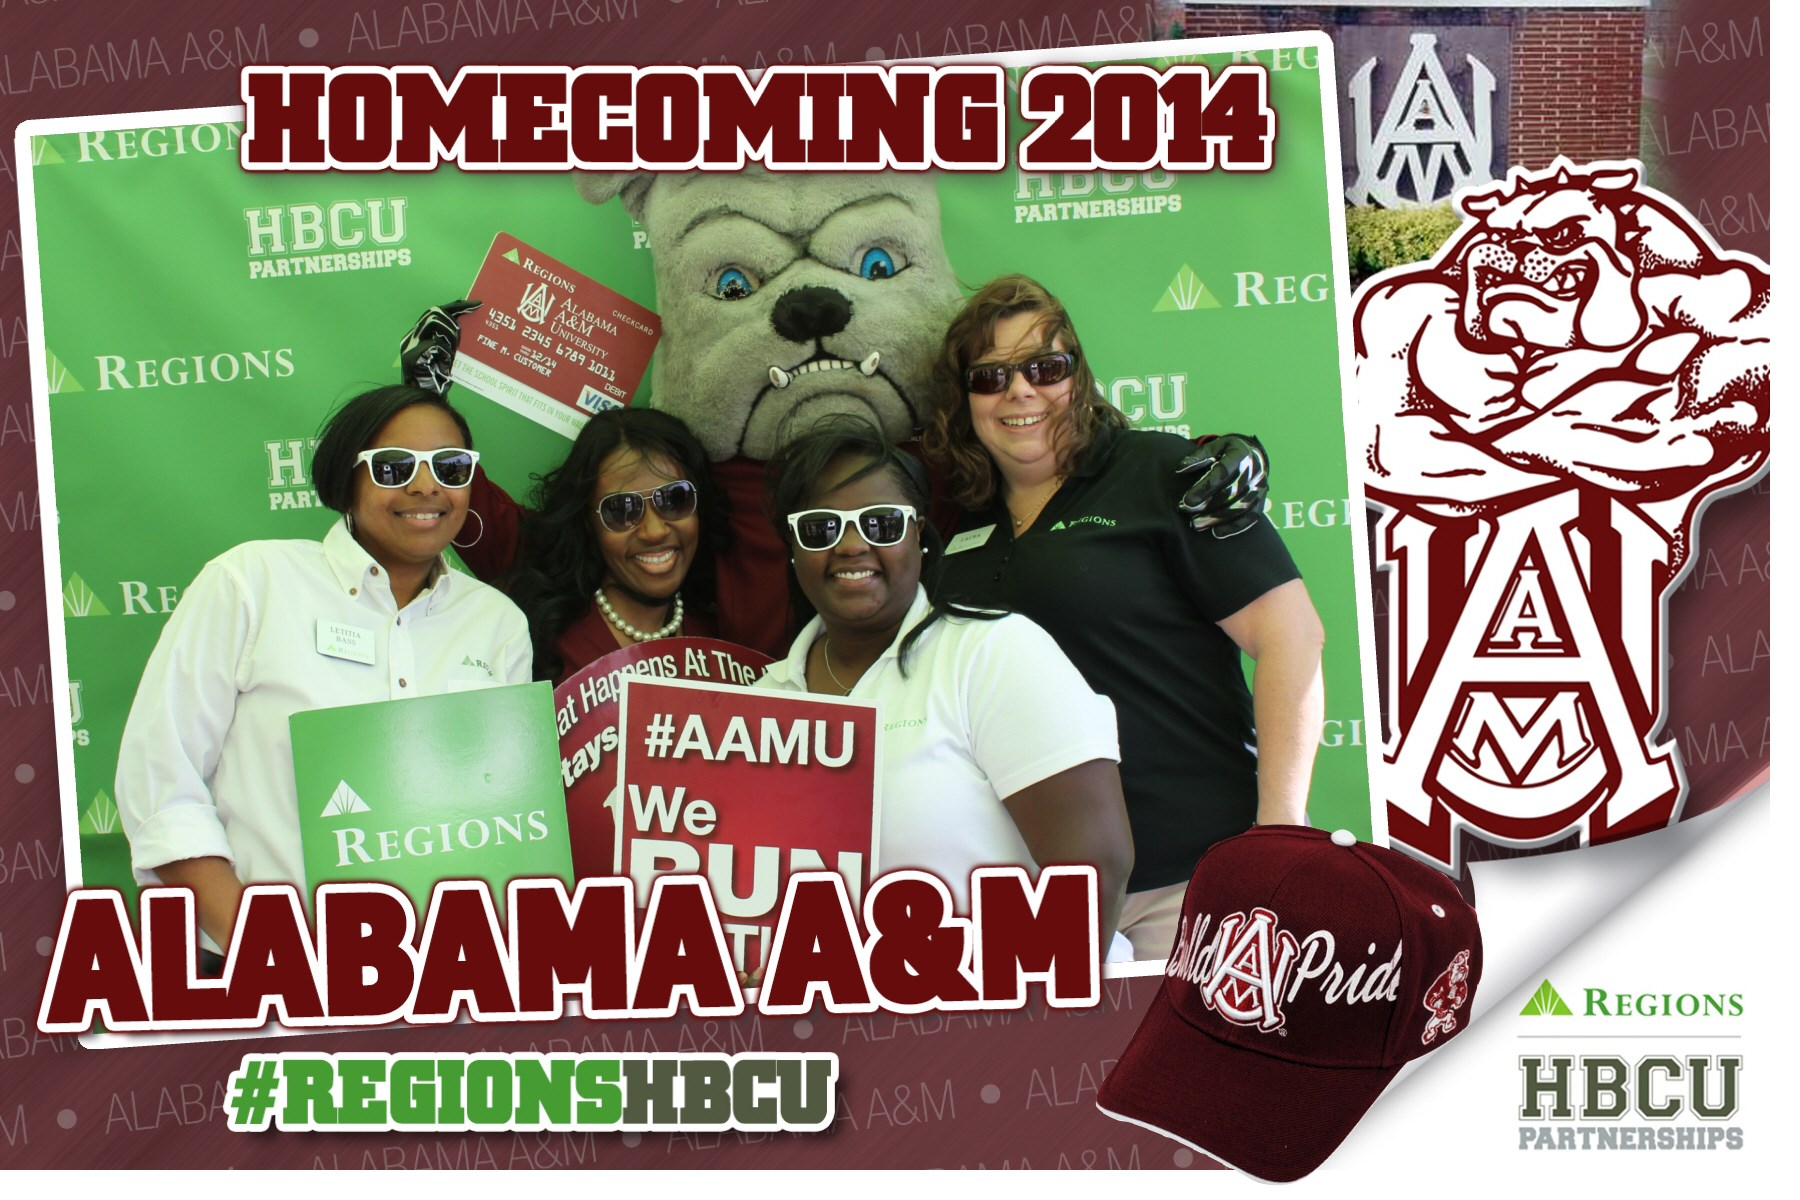 Regions HBCU AAMU Homecoming